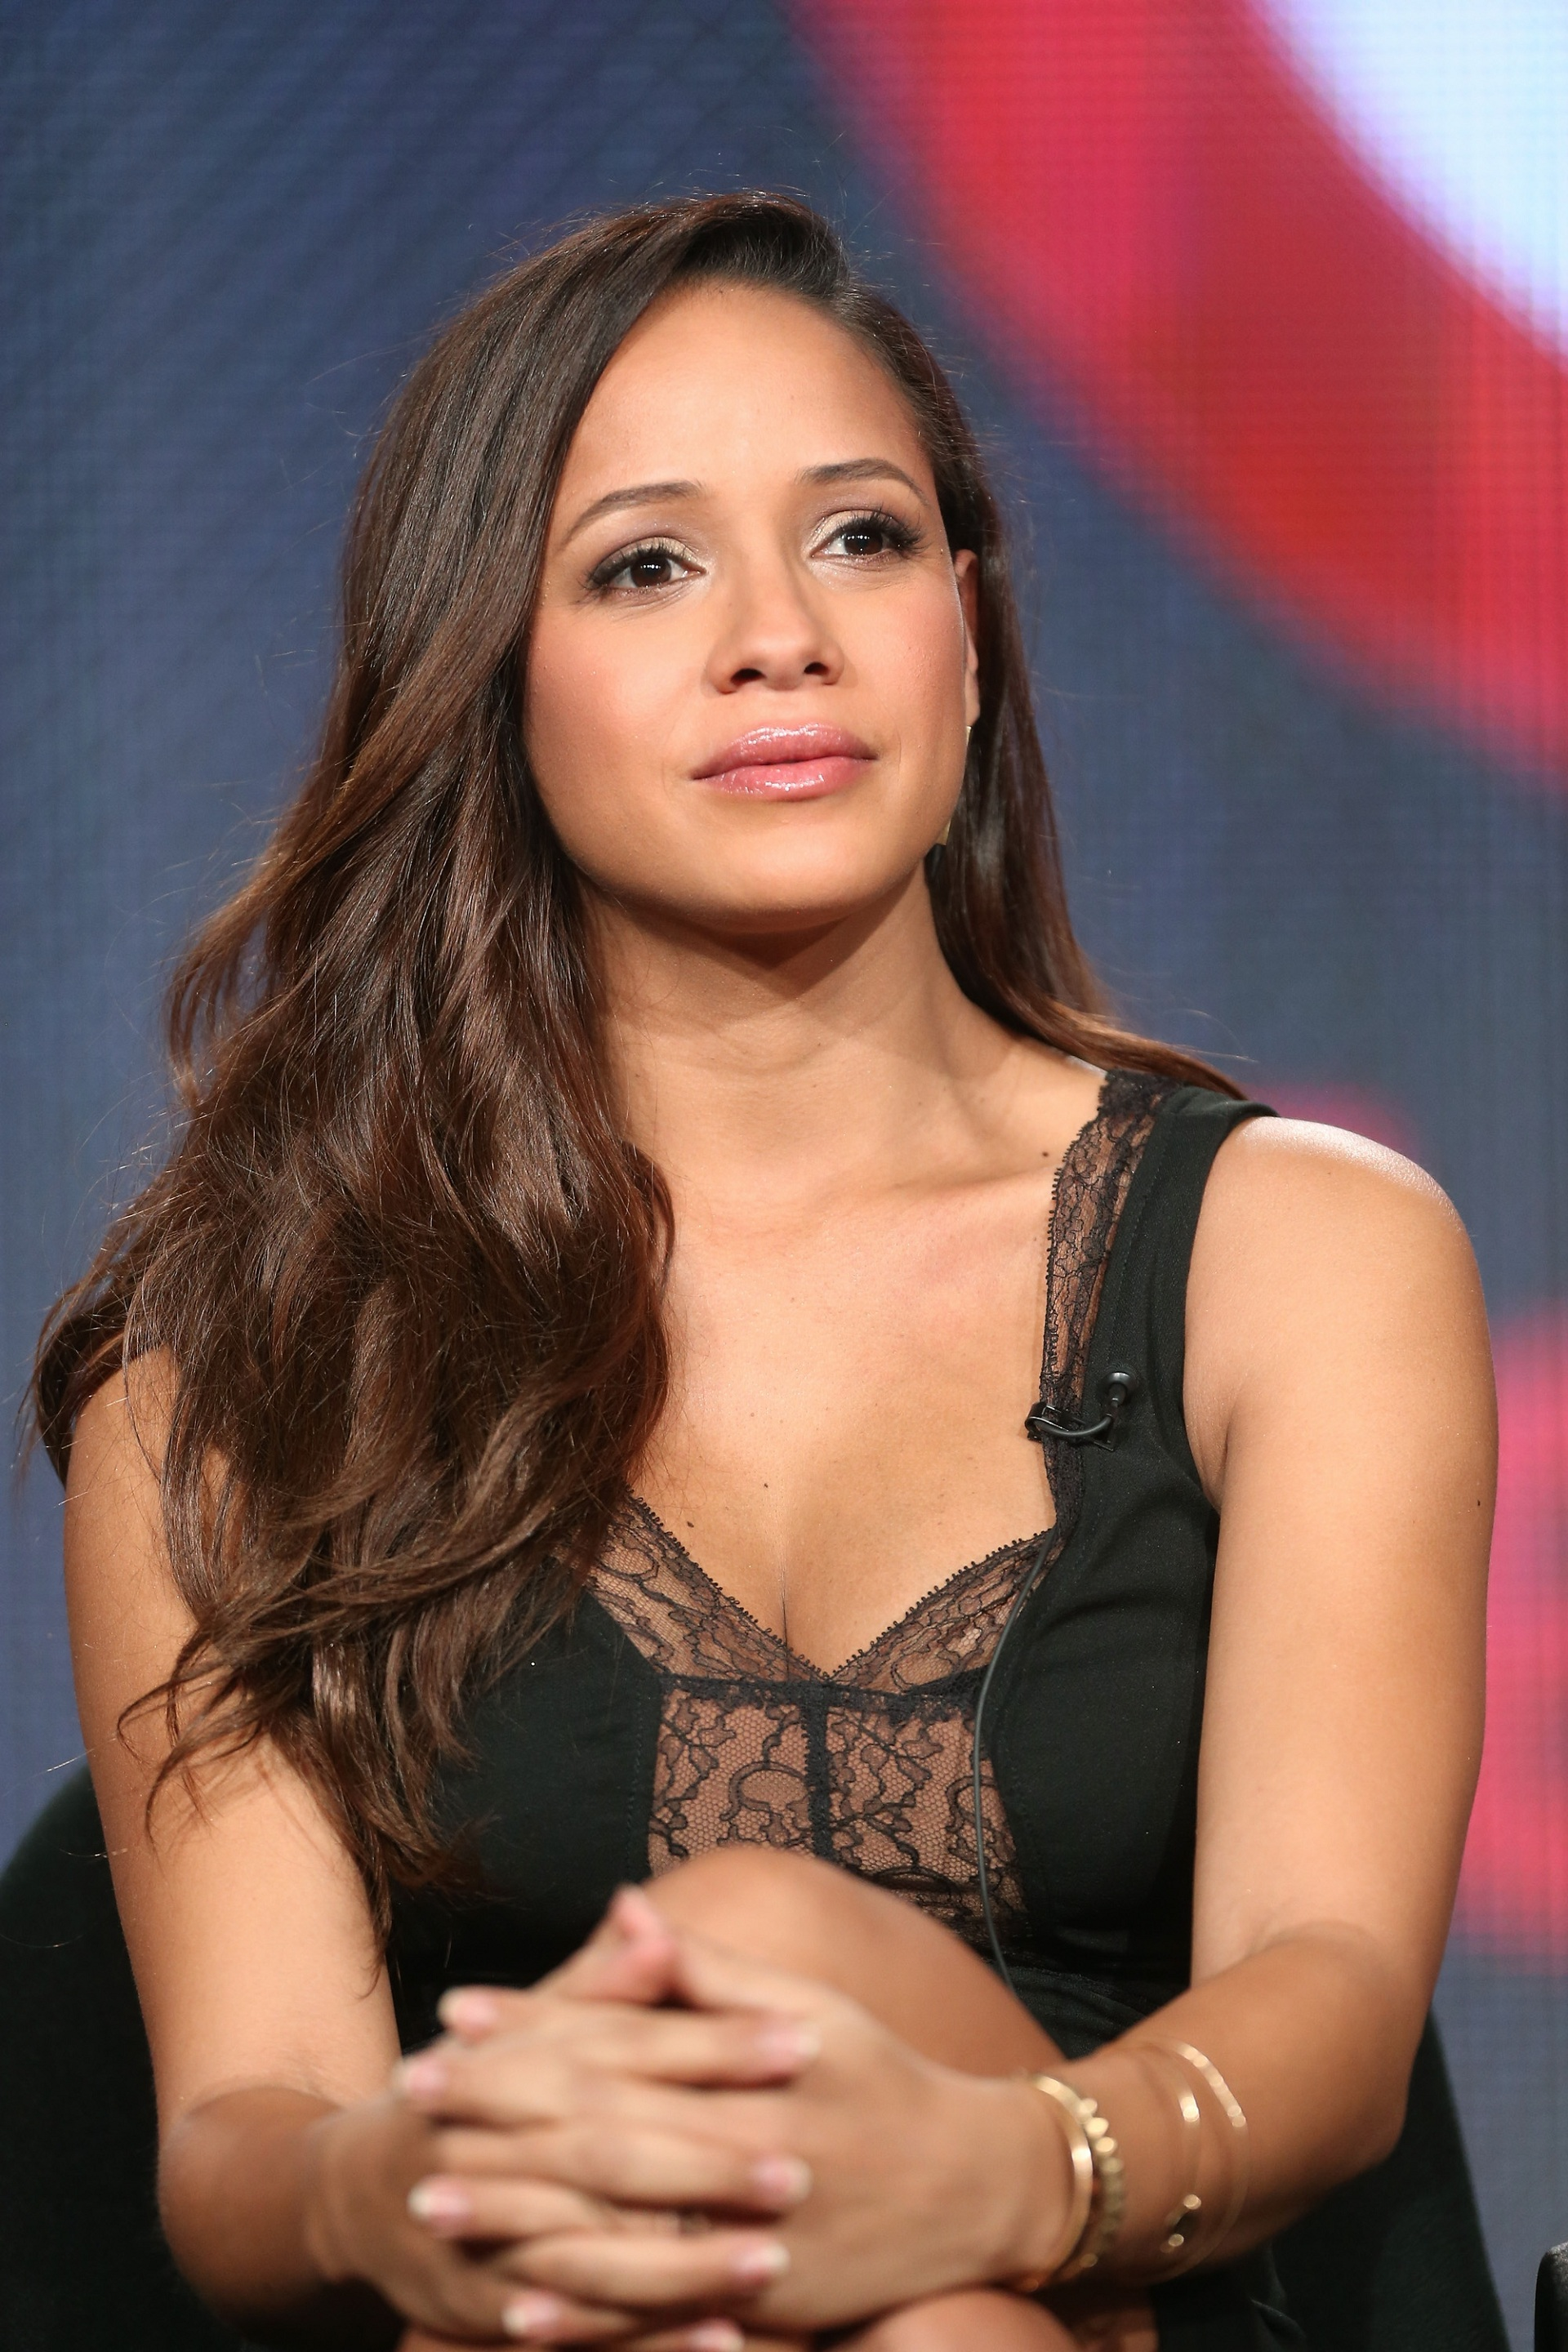 Dania Ramirez Archive SAWFIRST Hot Celebrity Pictures